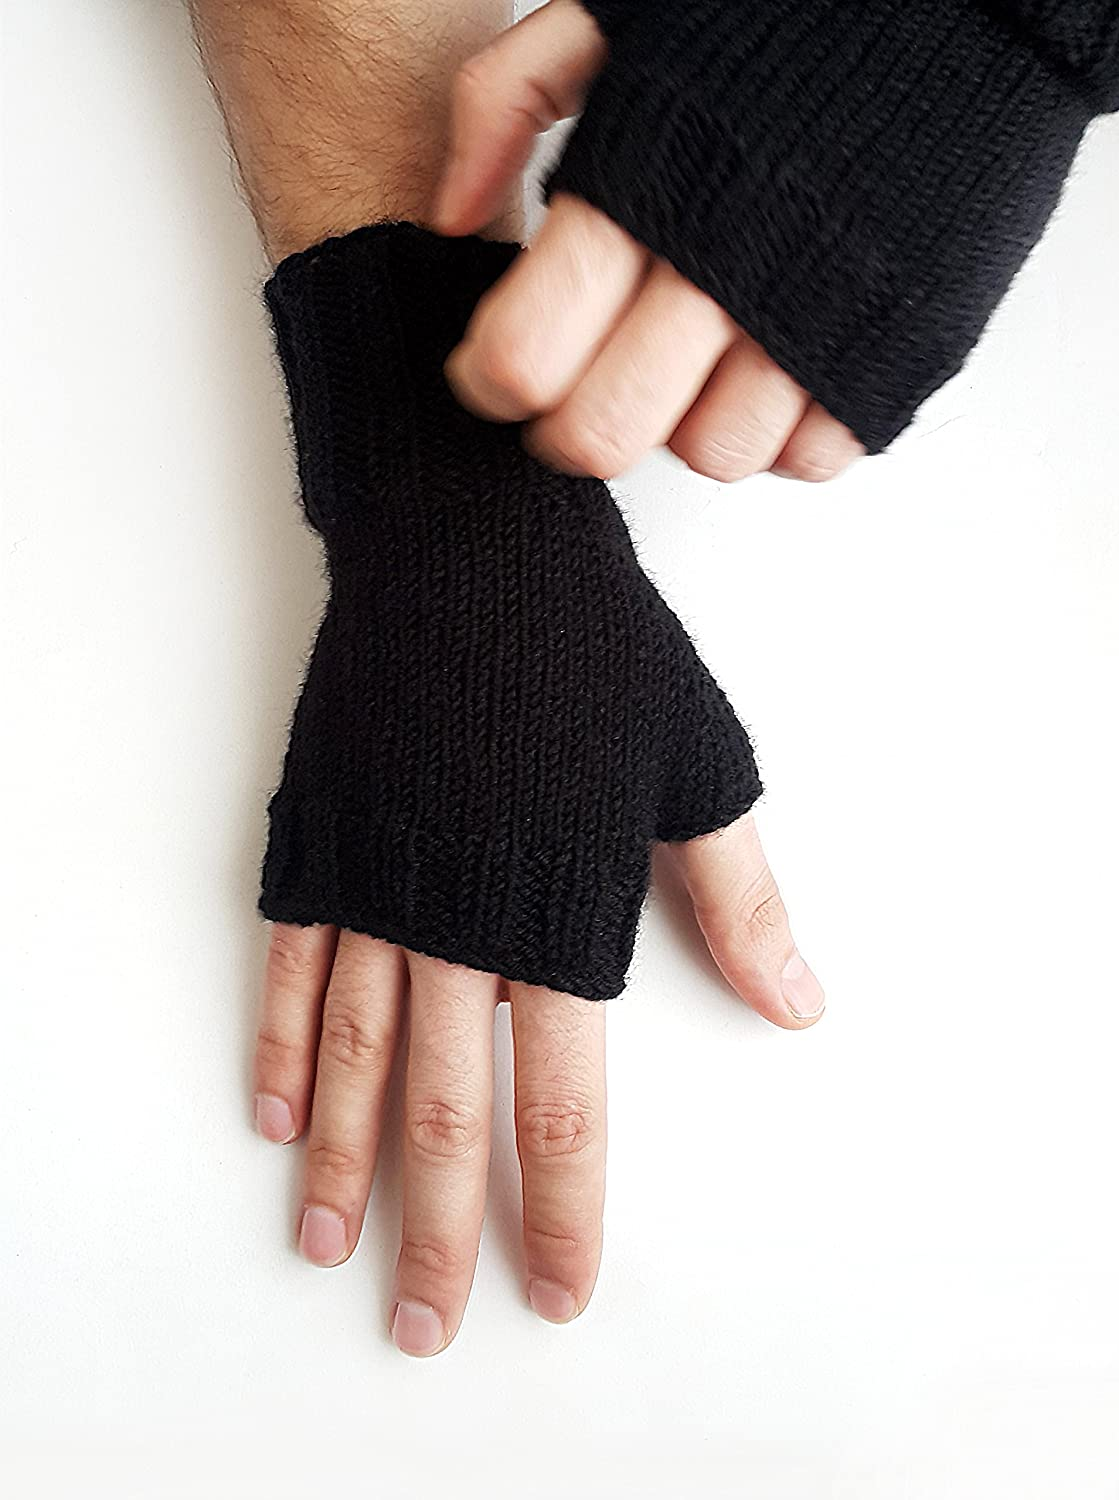 Men's basic gloves - Fingerless gloves men Men's knit gloves Texting gloves Gift for him